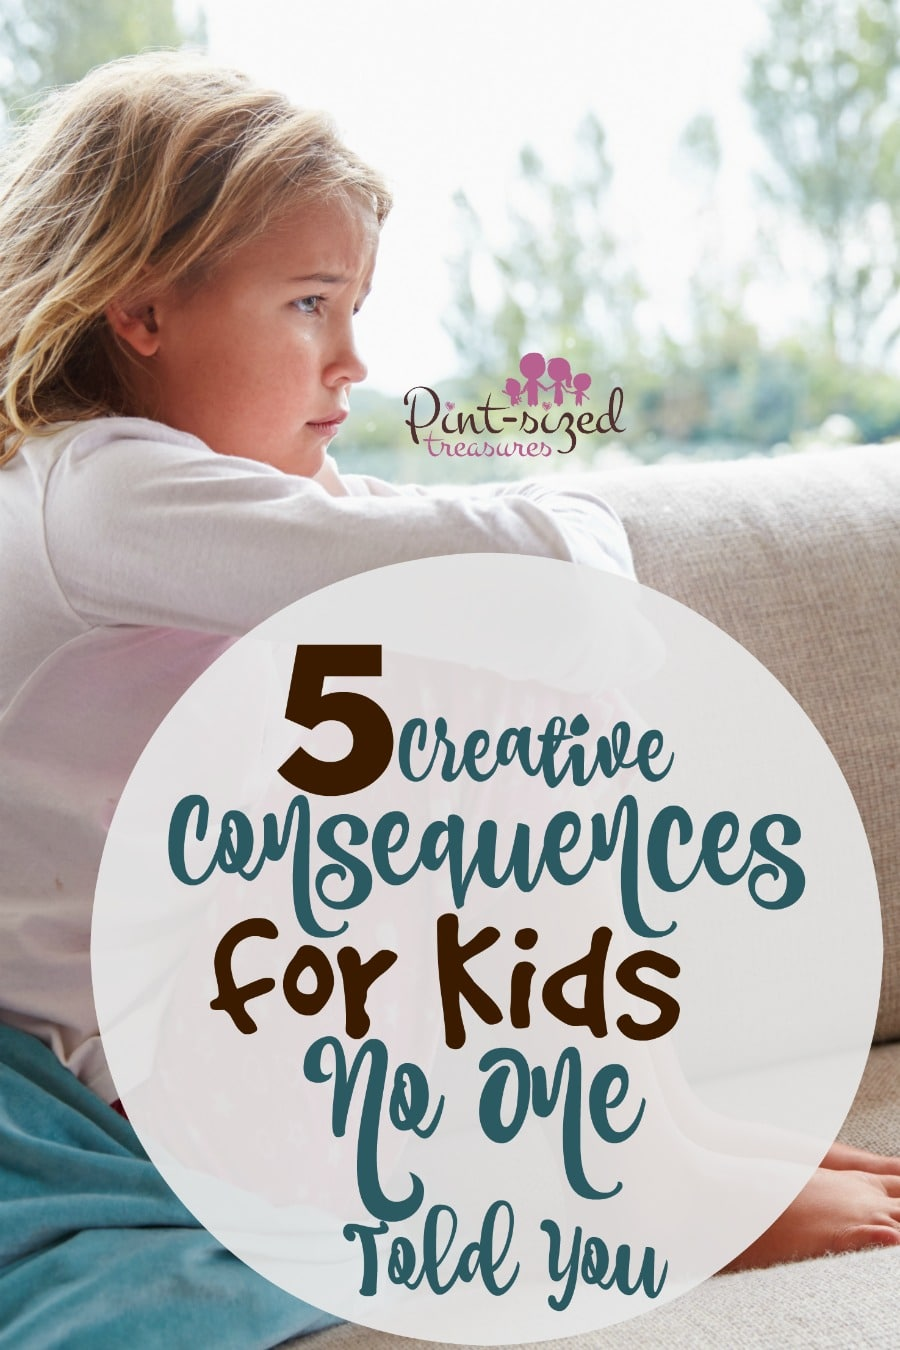 creative consequences for kids no one told you